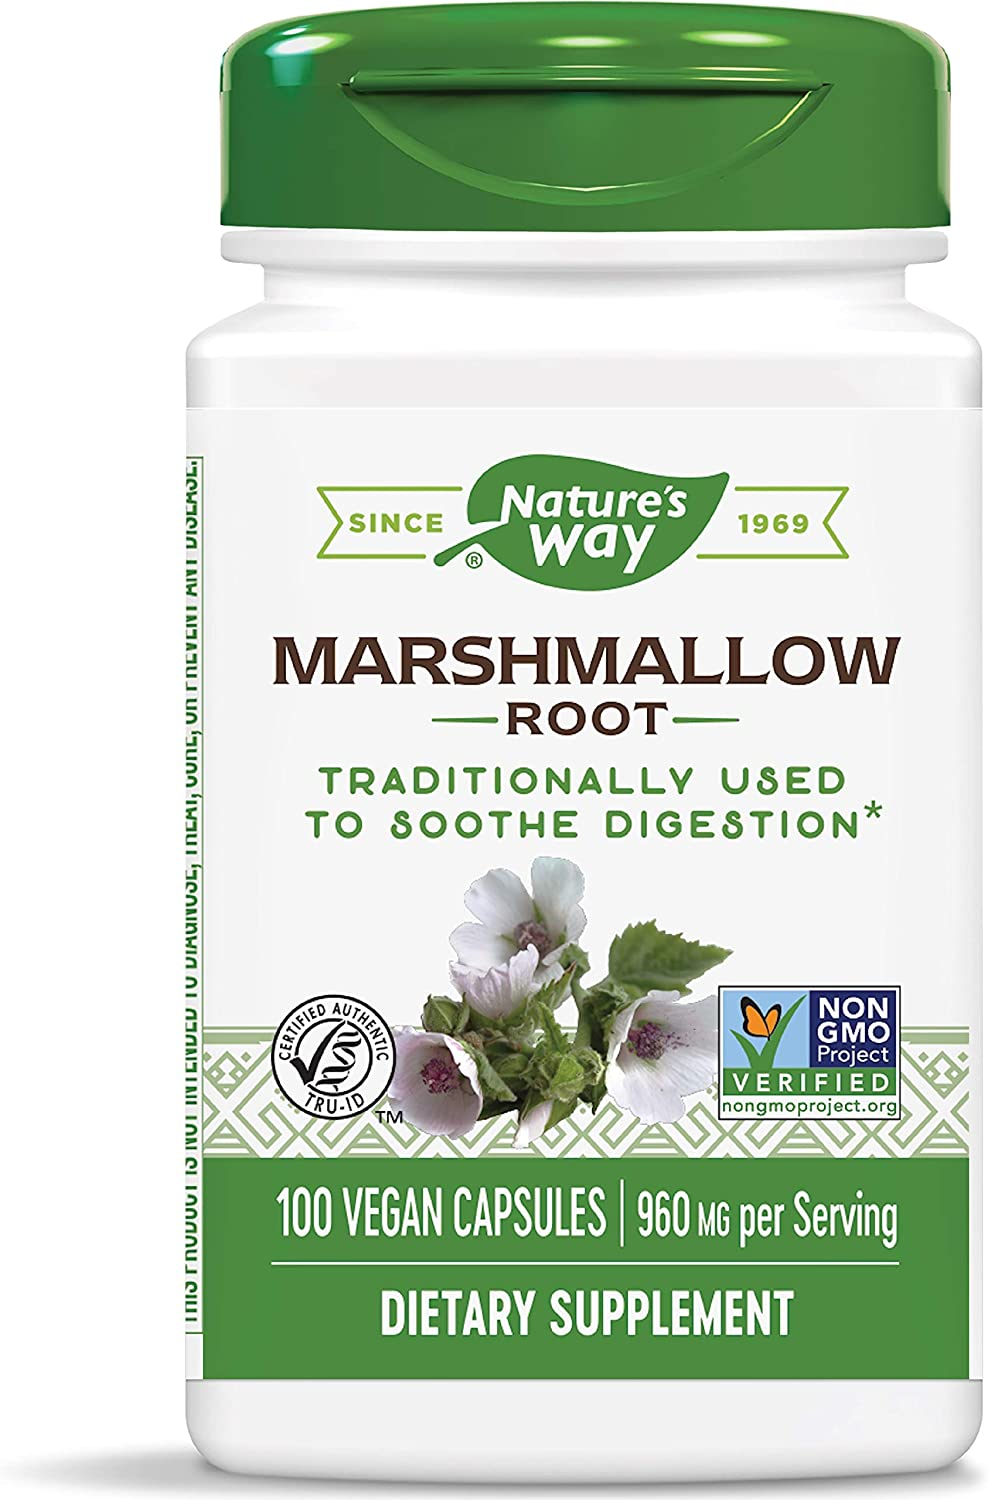 natures-way-marshmallow-root.jpg